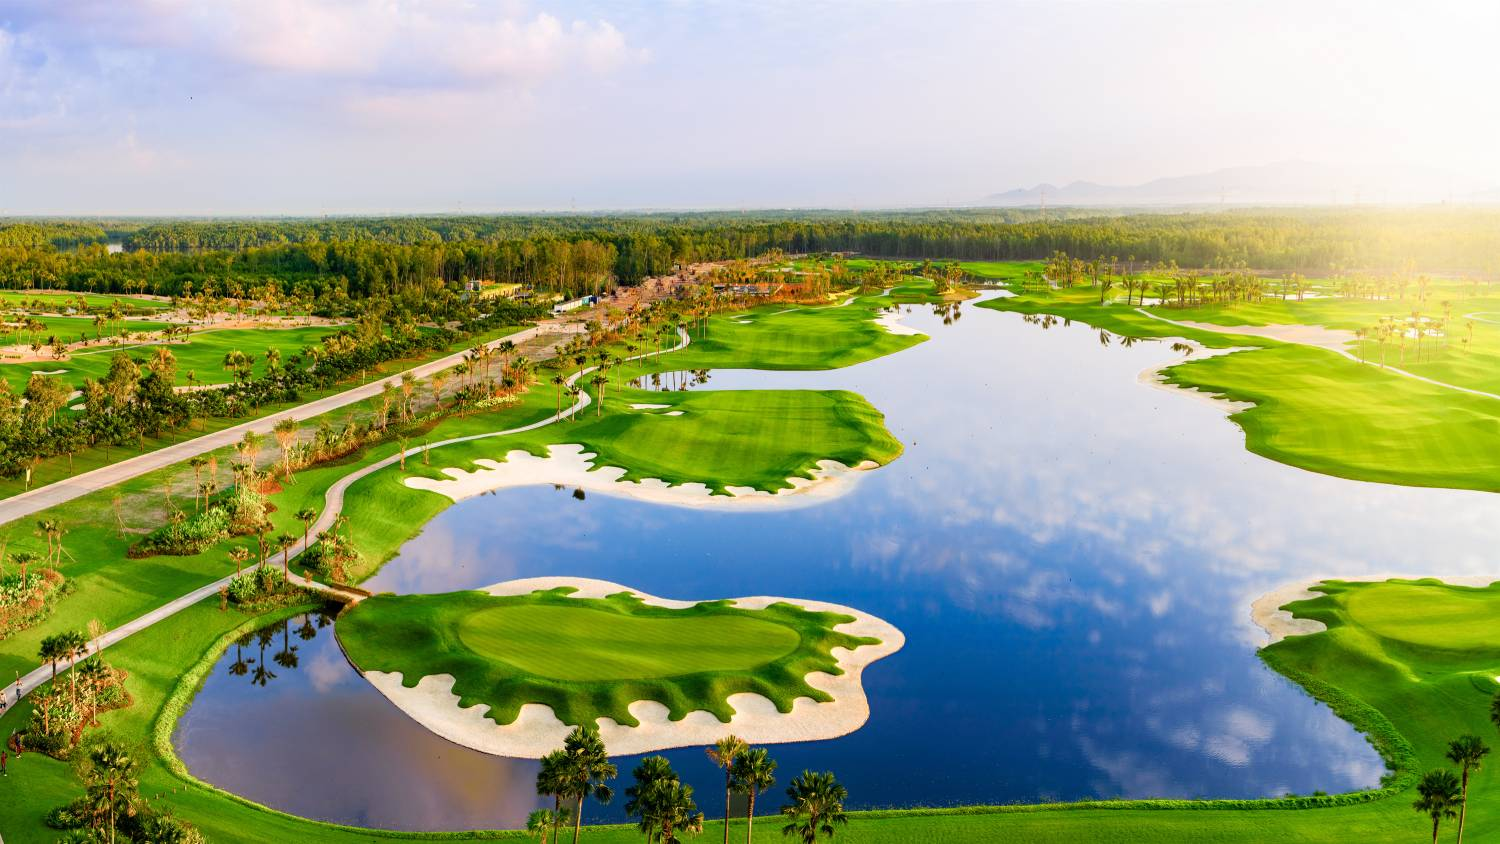 FOREST CITY - Designed by landscape architect and golf course designer Liang Guo Kun, the 18-hole Classic Golf Course is filled with lush greenery and lakes (Credit: Country Garden Pacificview) - EDGEPROP SINGAPORE